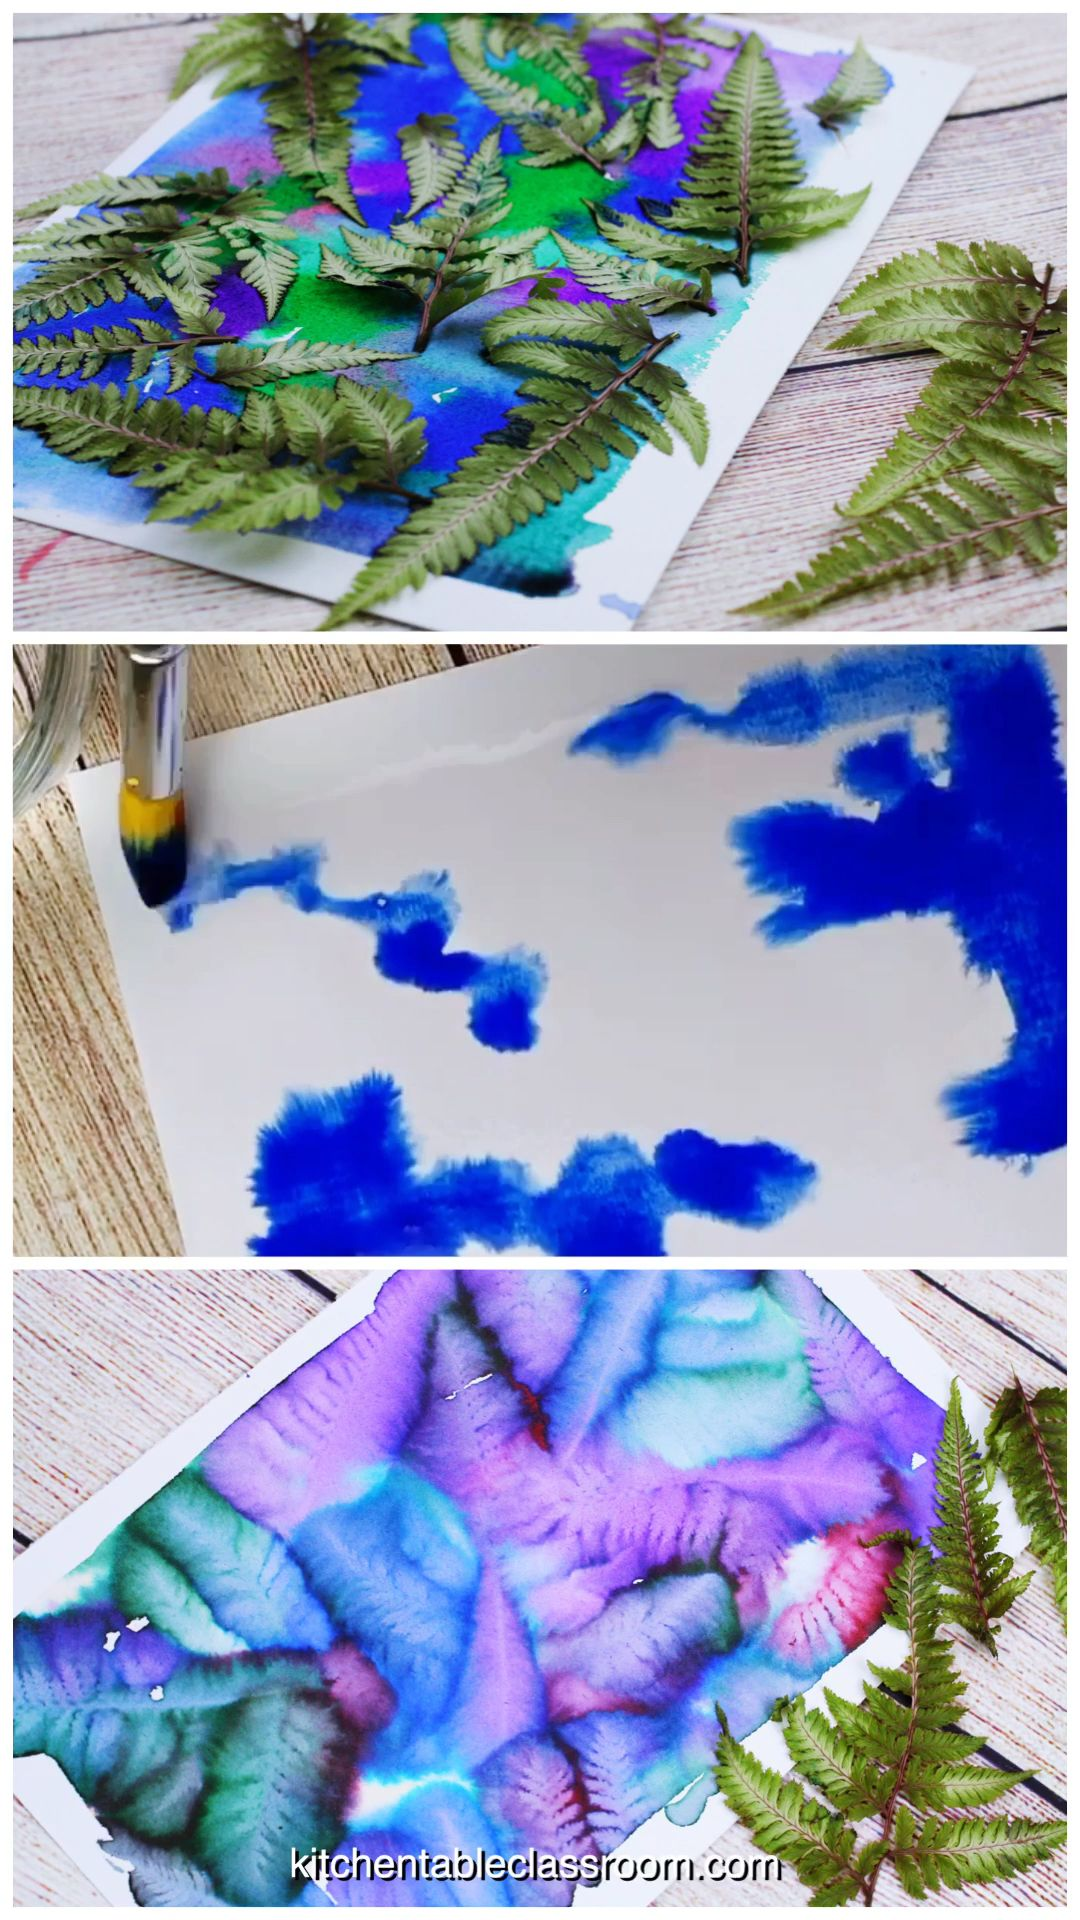 Leaf Printing Stunning Watercolor Botanical Prints is part of Crayon art melted, Crayon art, Art, Watercolor art, Process art, Botanical prints - This spontaneous leaf printing process only takes watercolor paints but produces some of the most detailed, vibrant leaf prints you've ever seen!